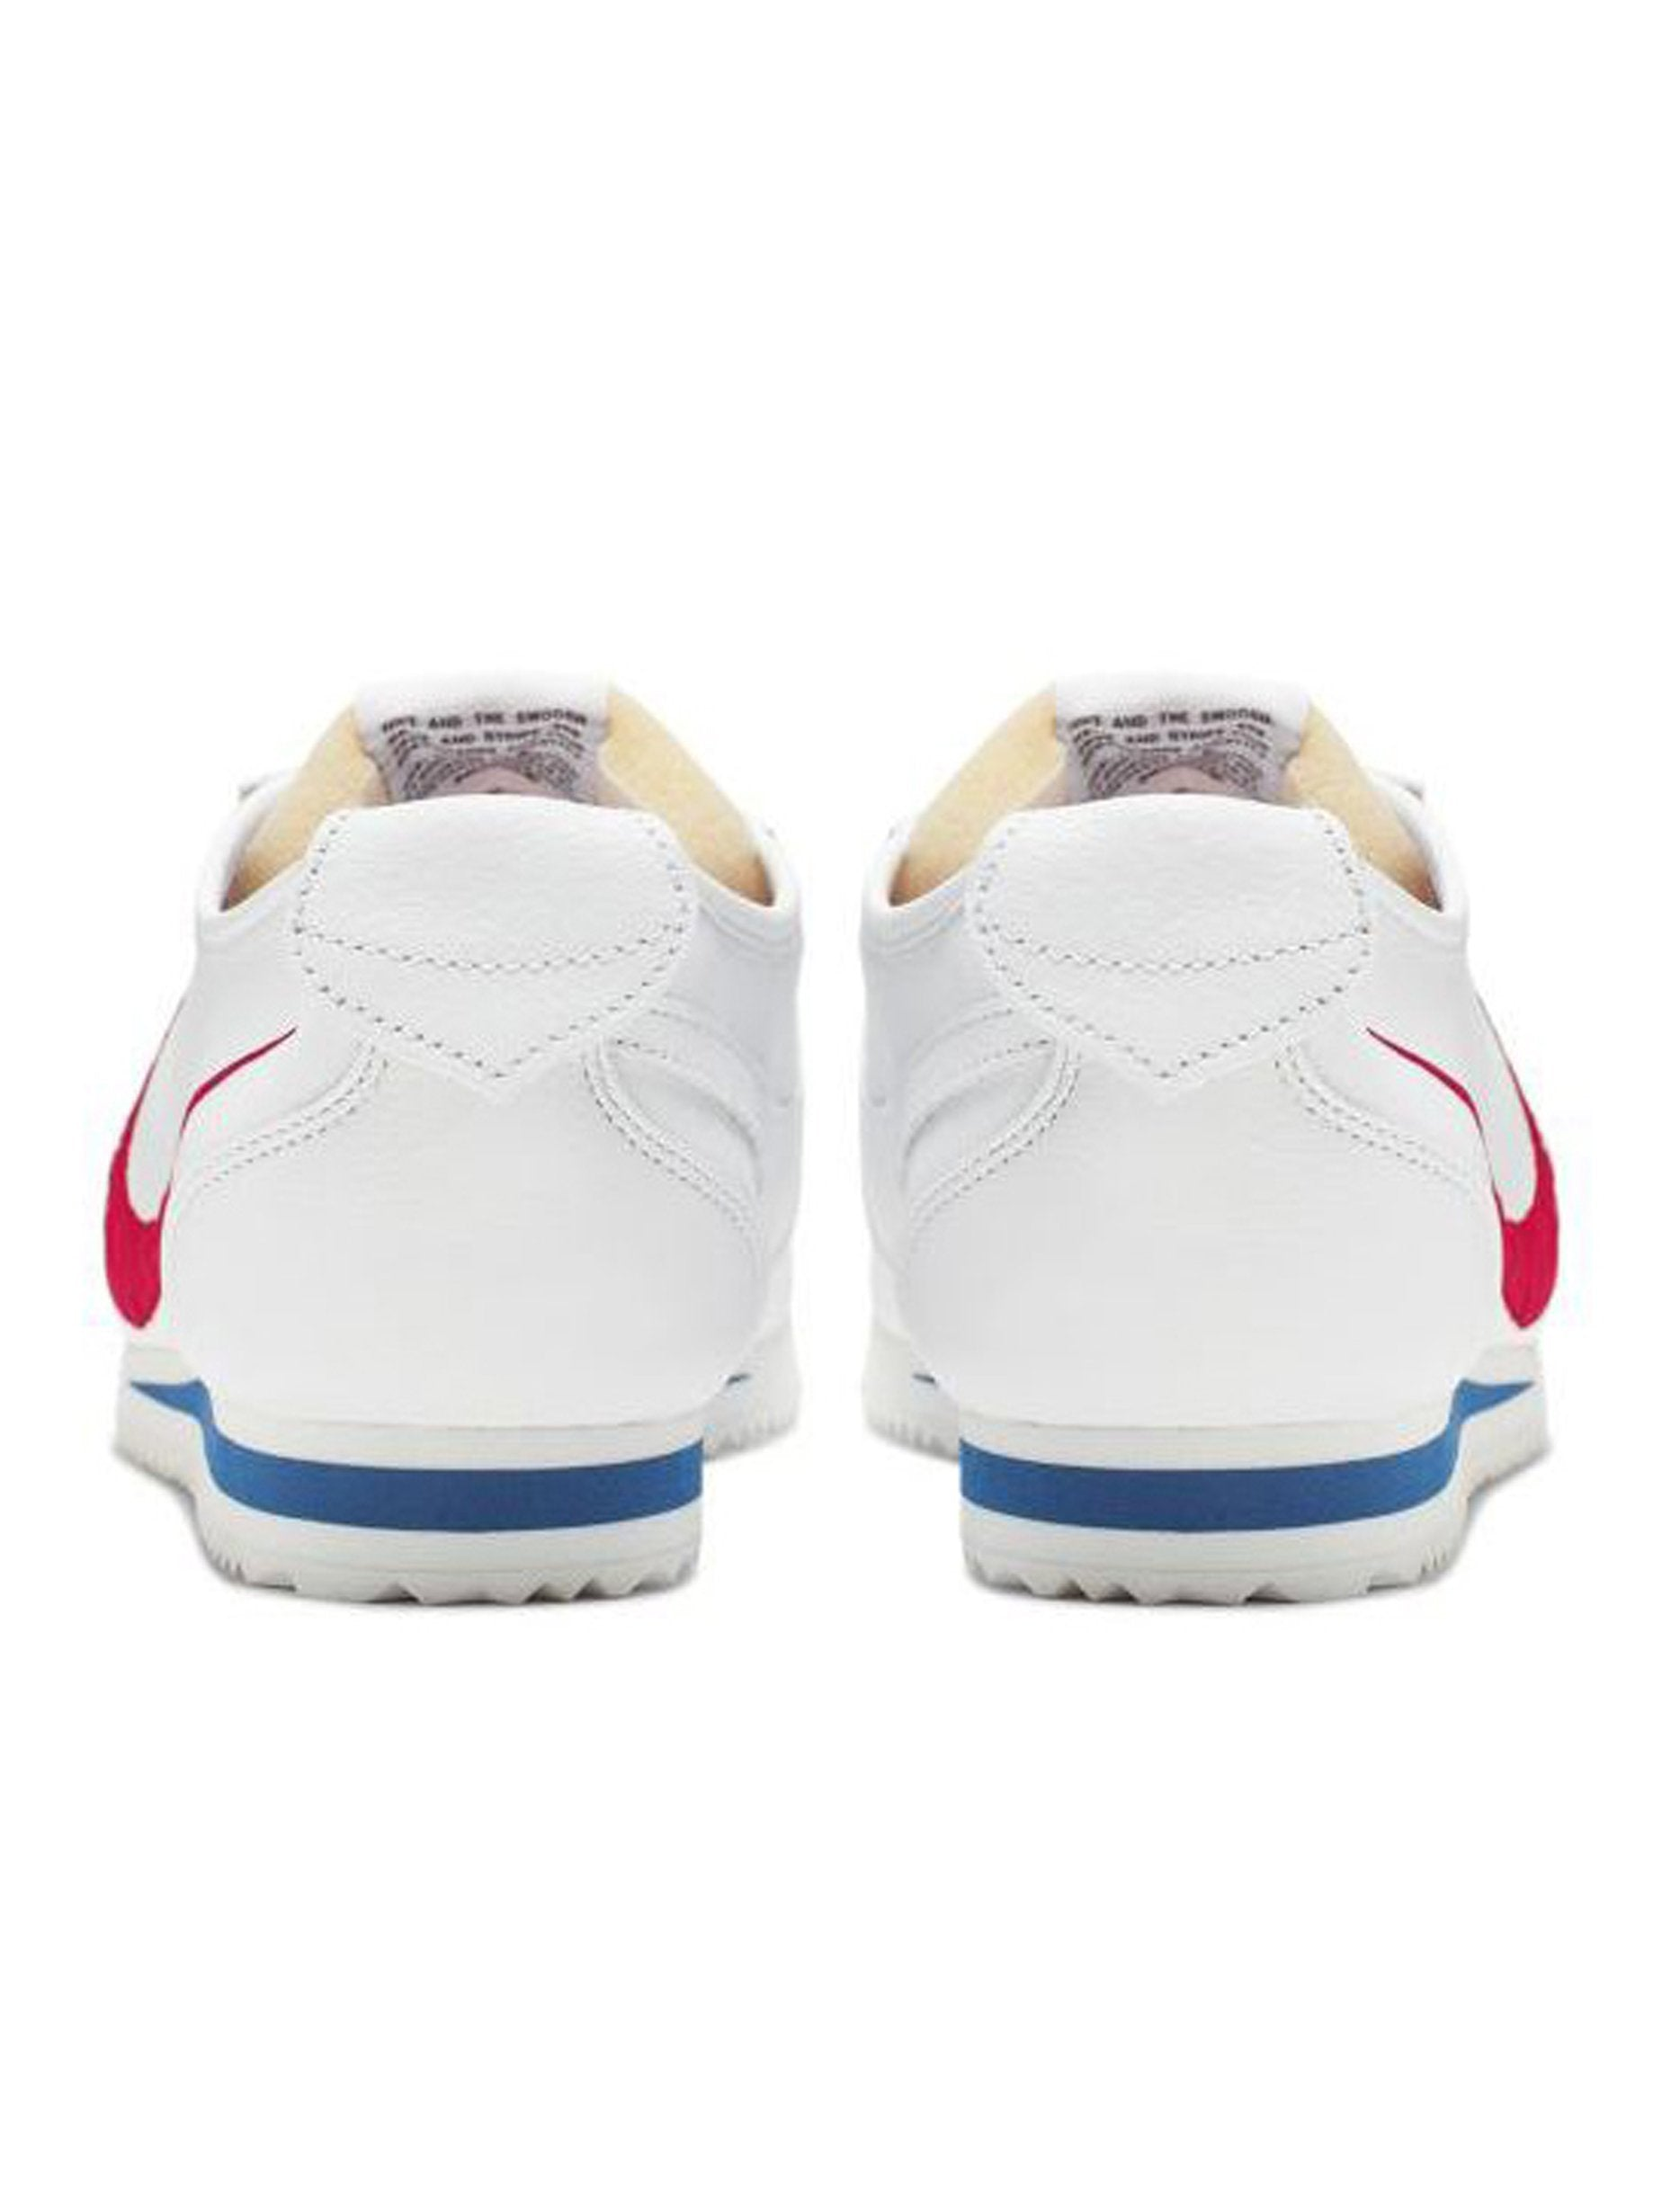 Buy NIKE Nike Cortez \u002772 Shoedog Q (Swoosh) Online at UNION